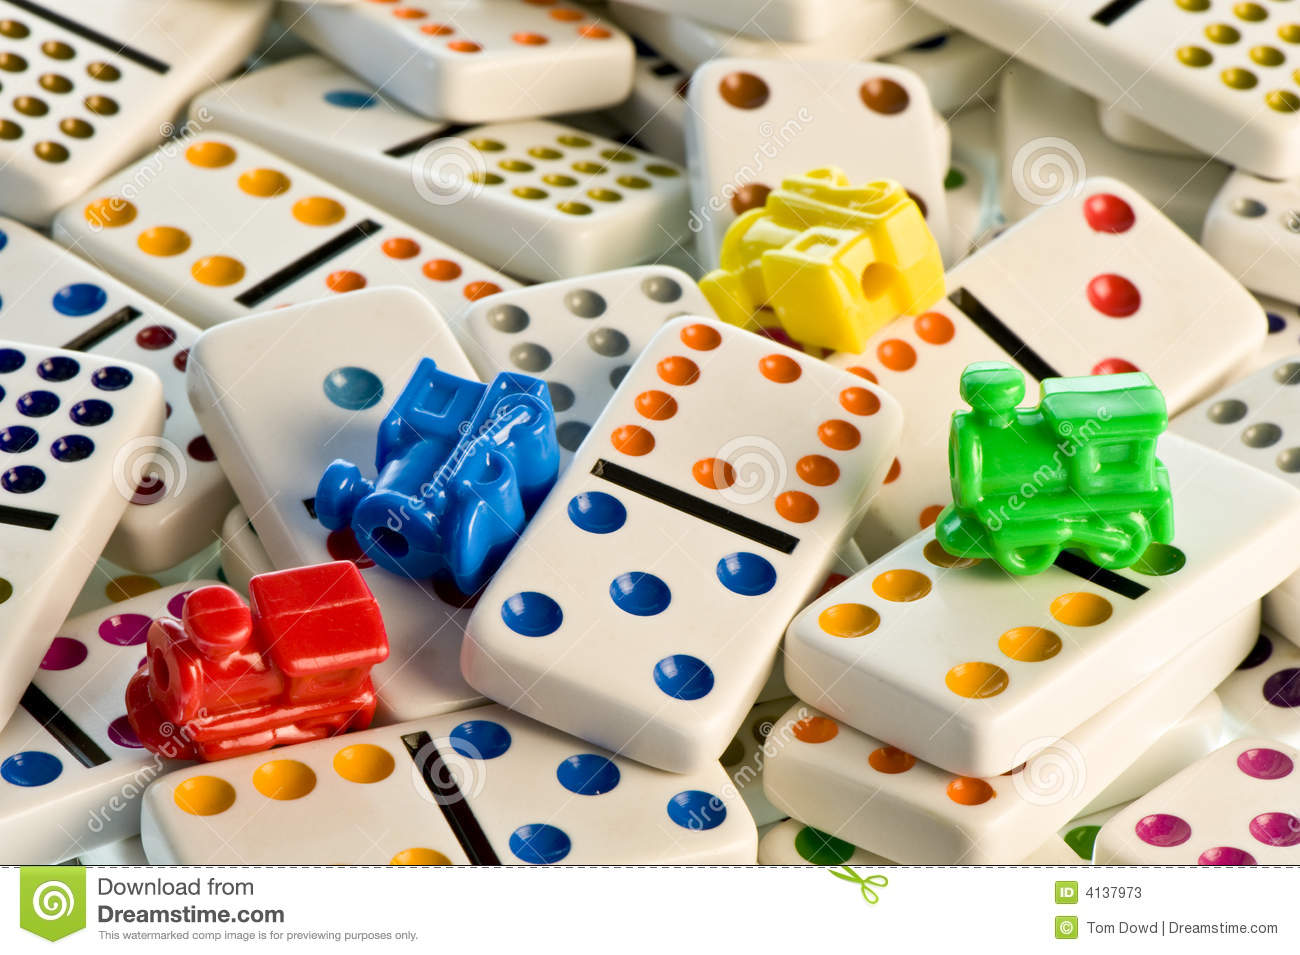 Closeup Of Colorful Plastic Dominoes And Train Locomotives Used In A